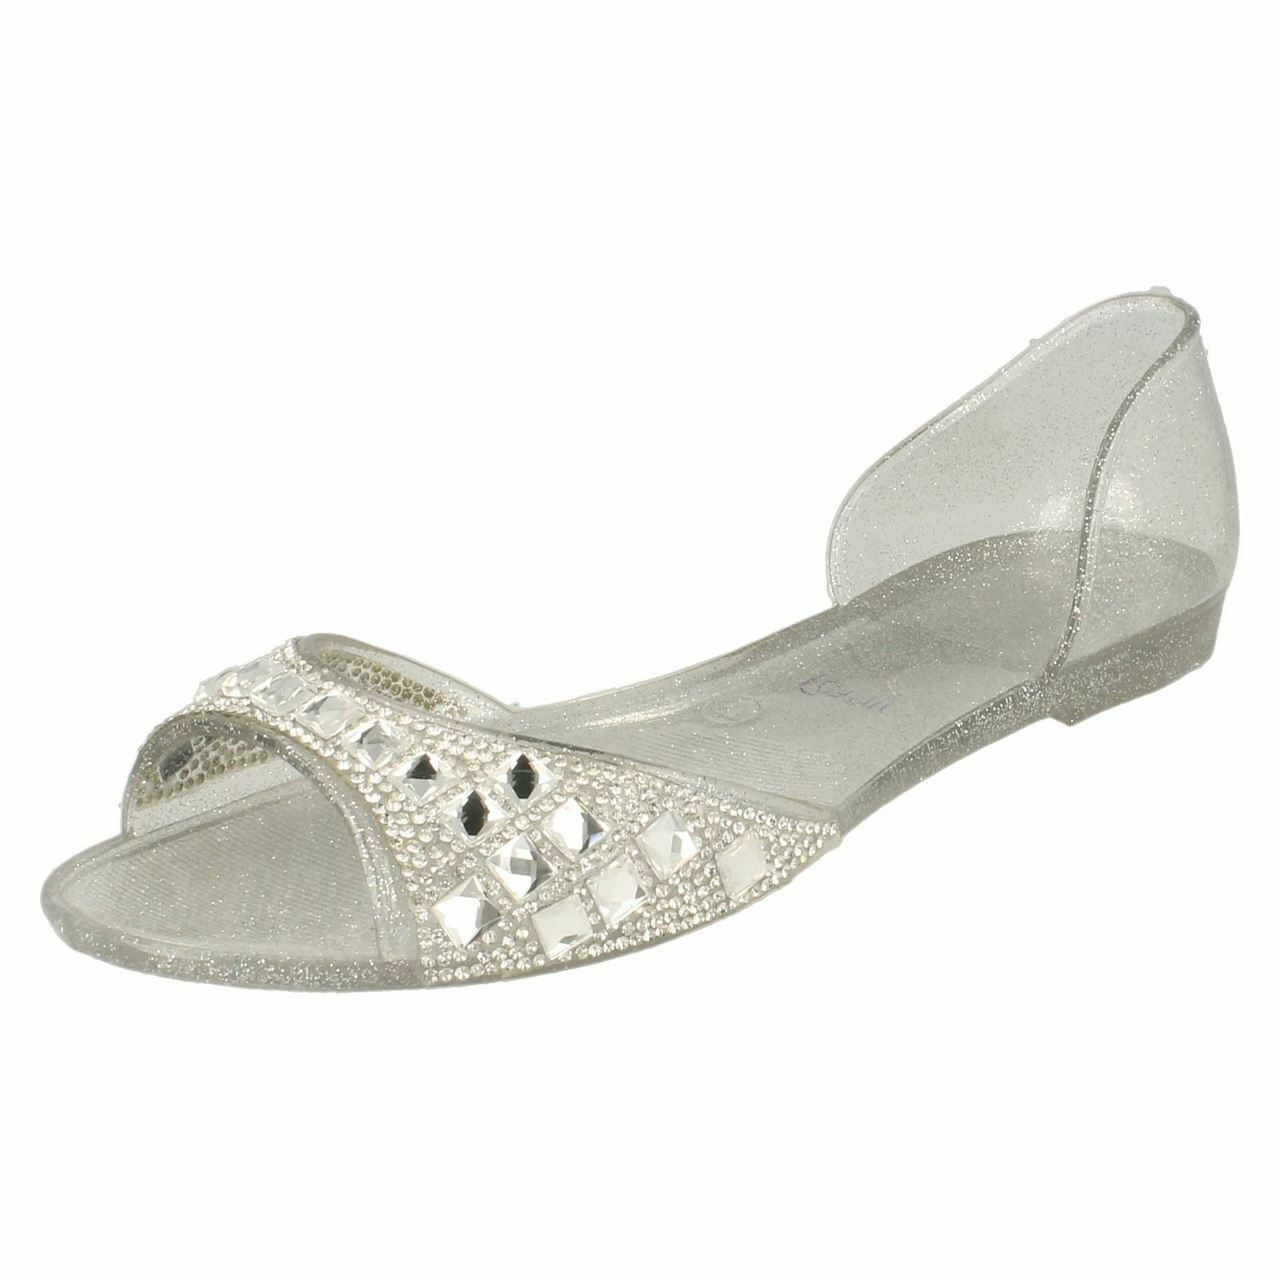 SOLDE Spot piscine/PLAGE/chaussures On f0794 femmes argent piscine/PLAGE/chaussures Spot décontractées 70714c